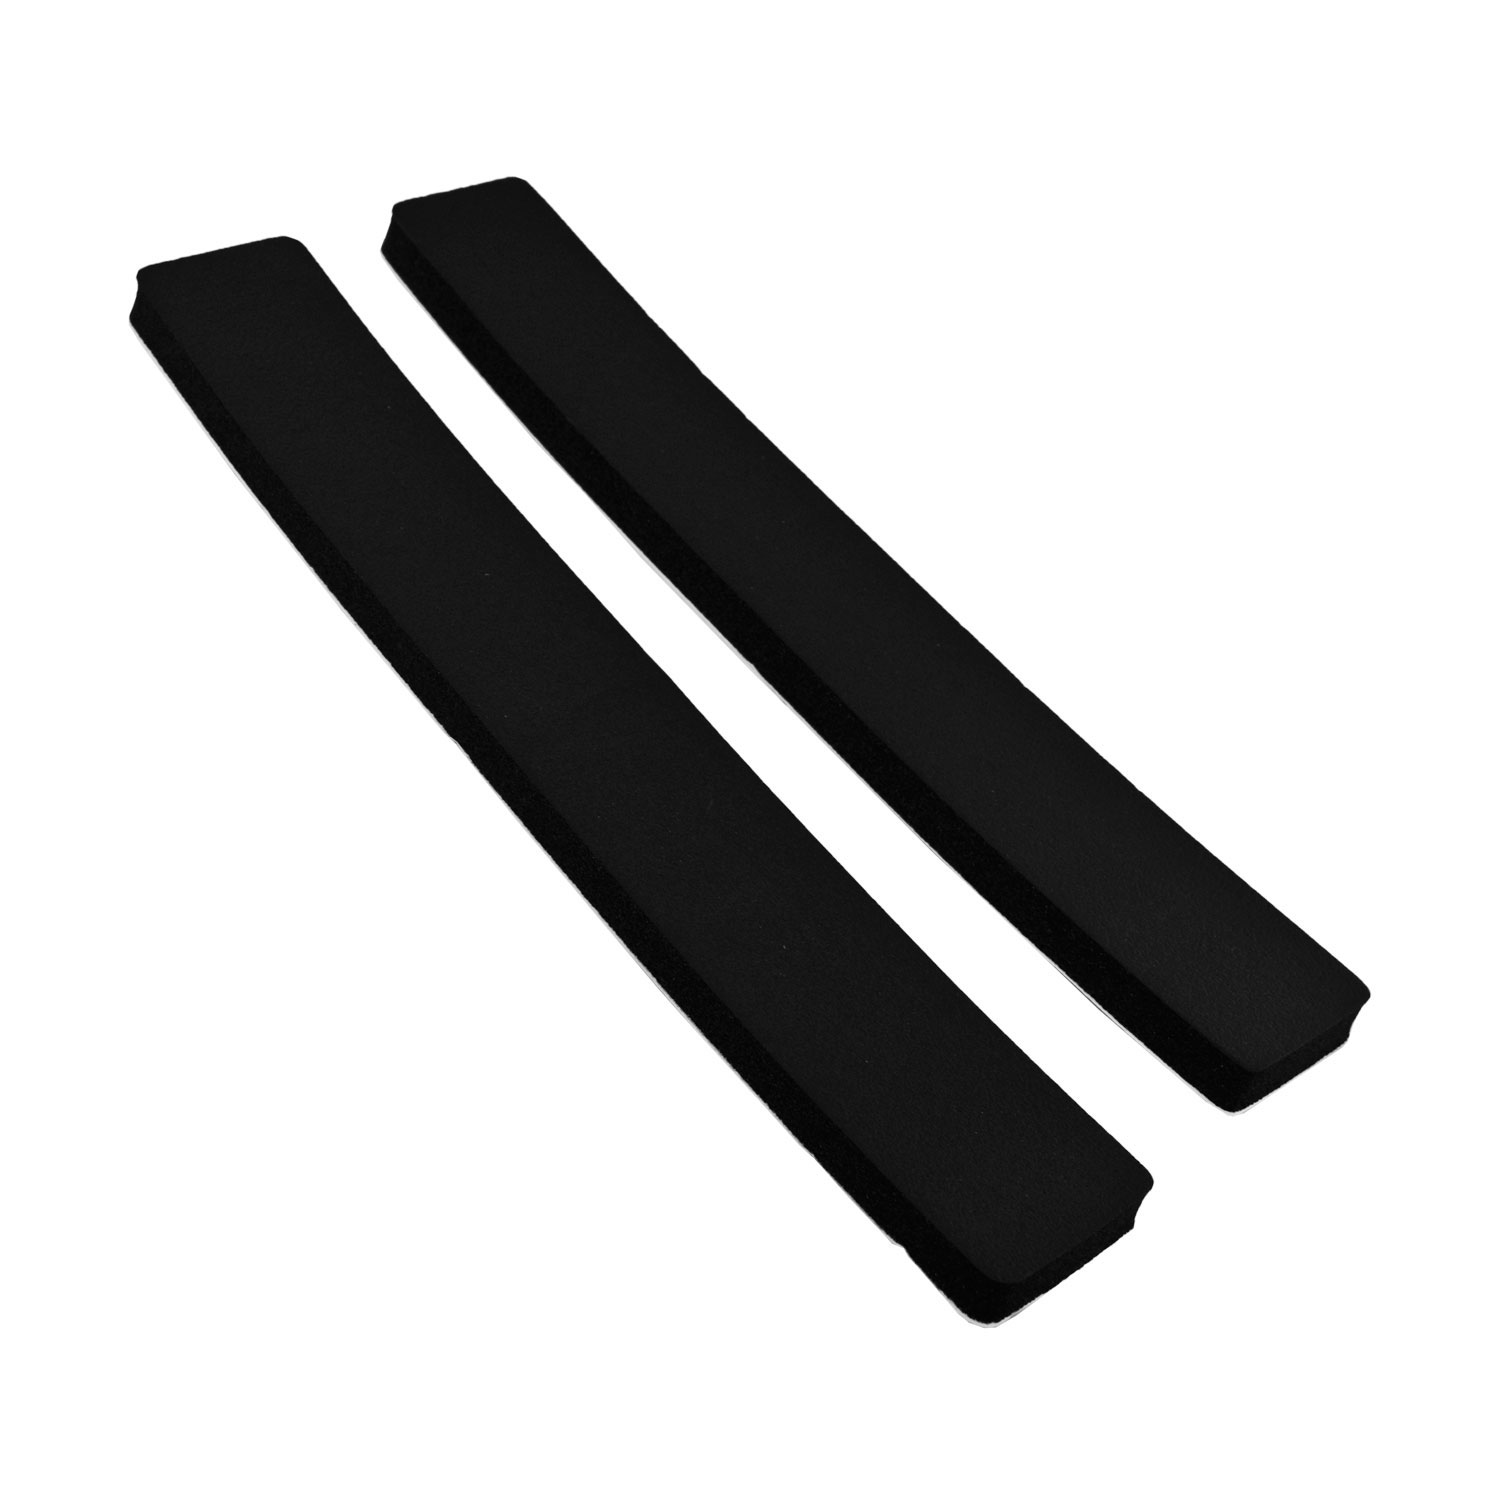 Yamaha/Randall May Foam for Marching Carrier Shoulders